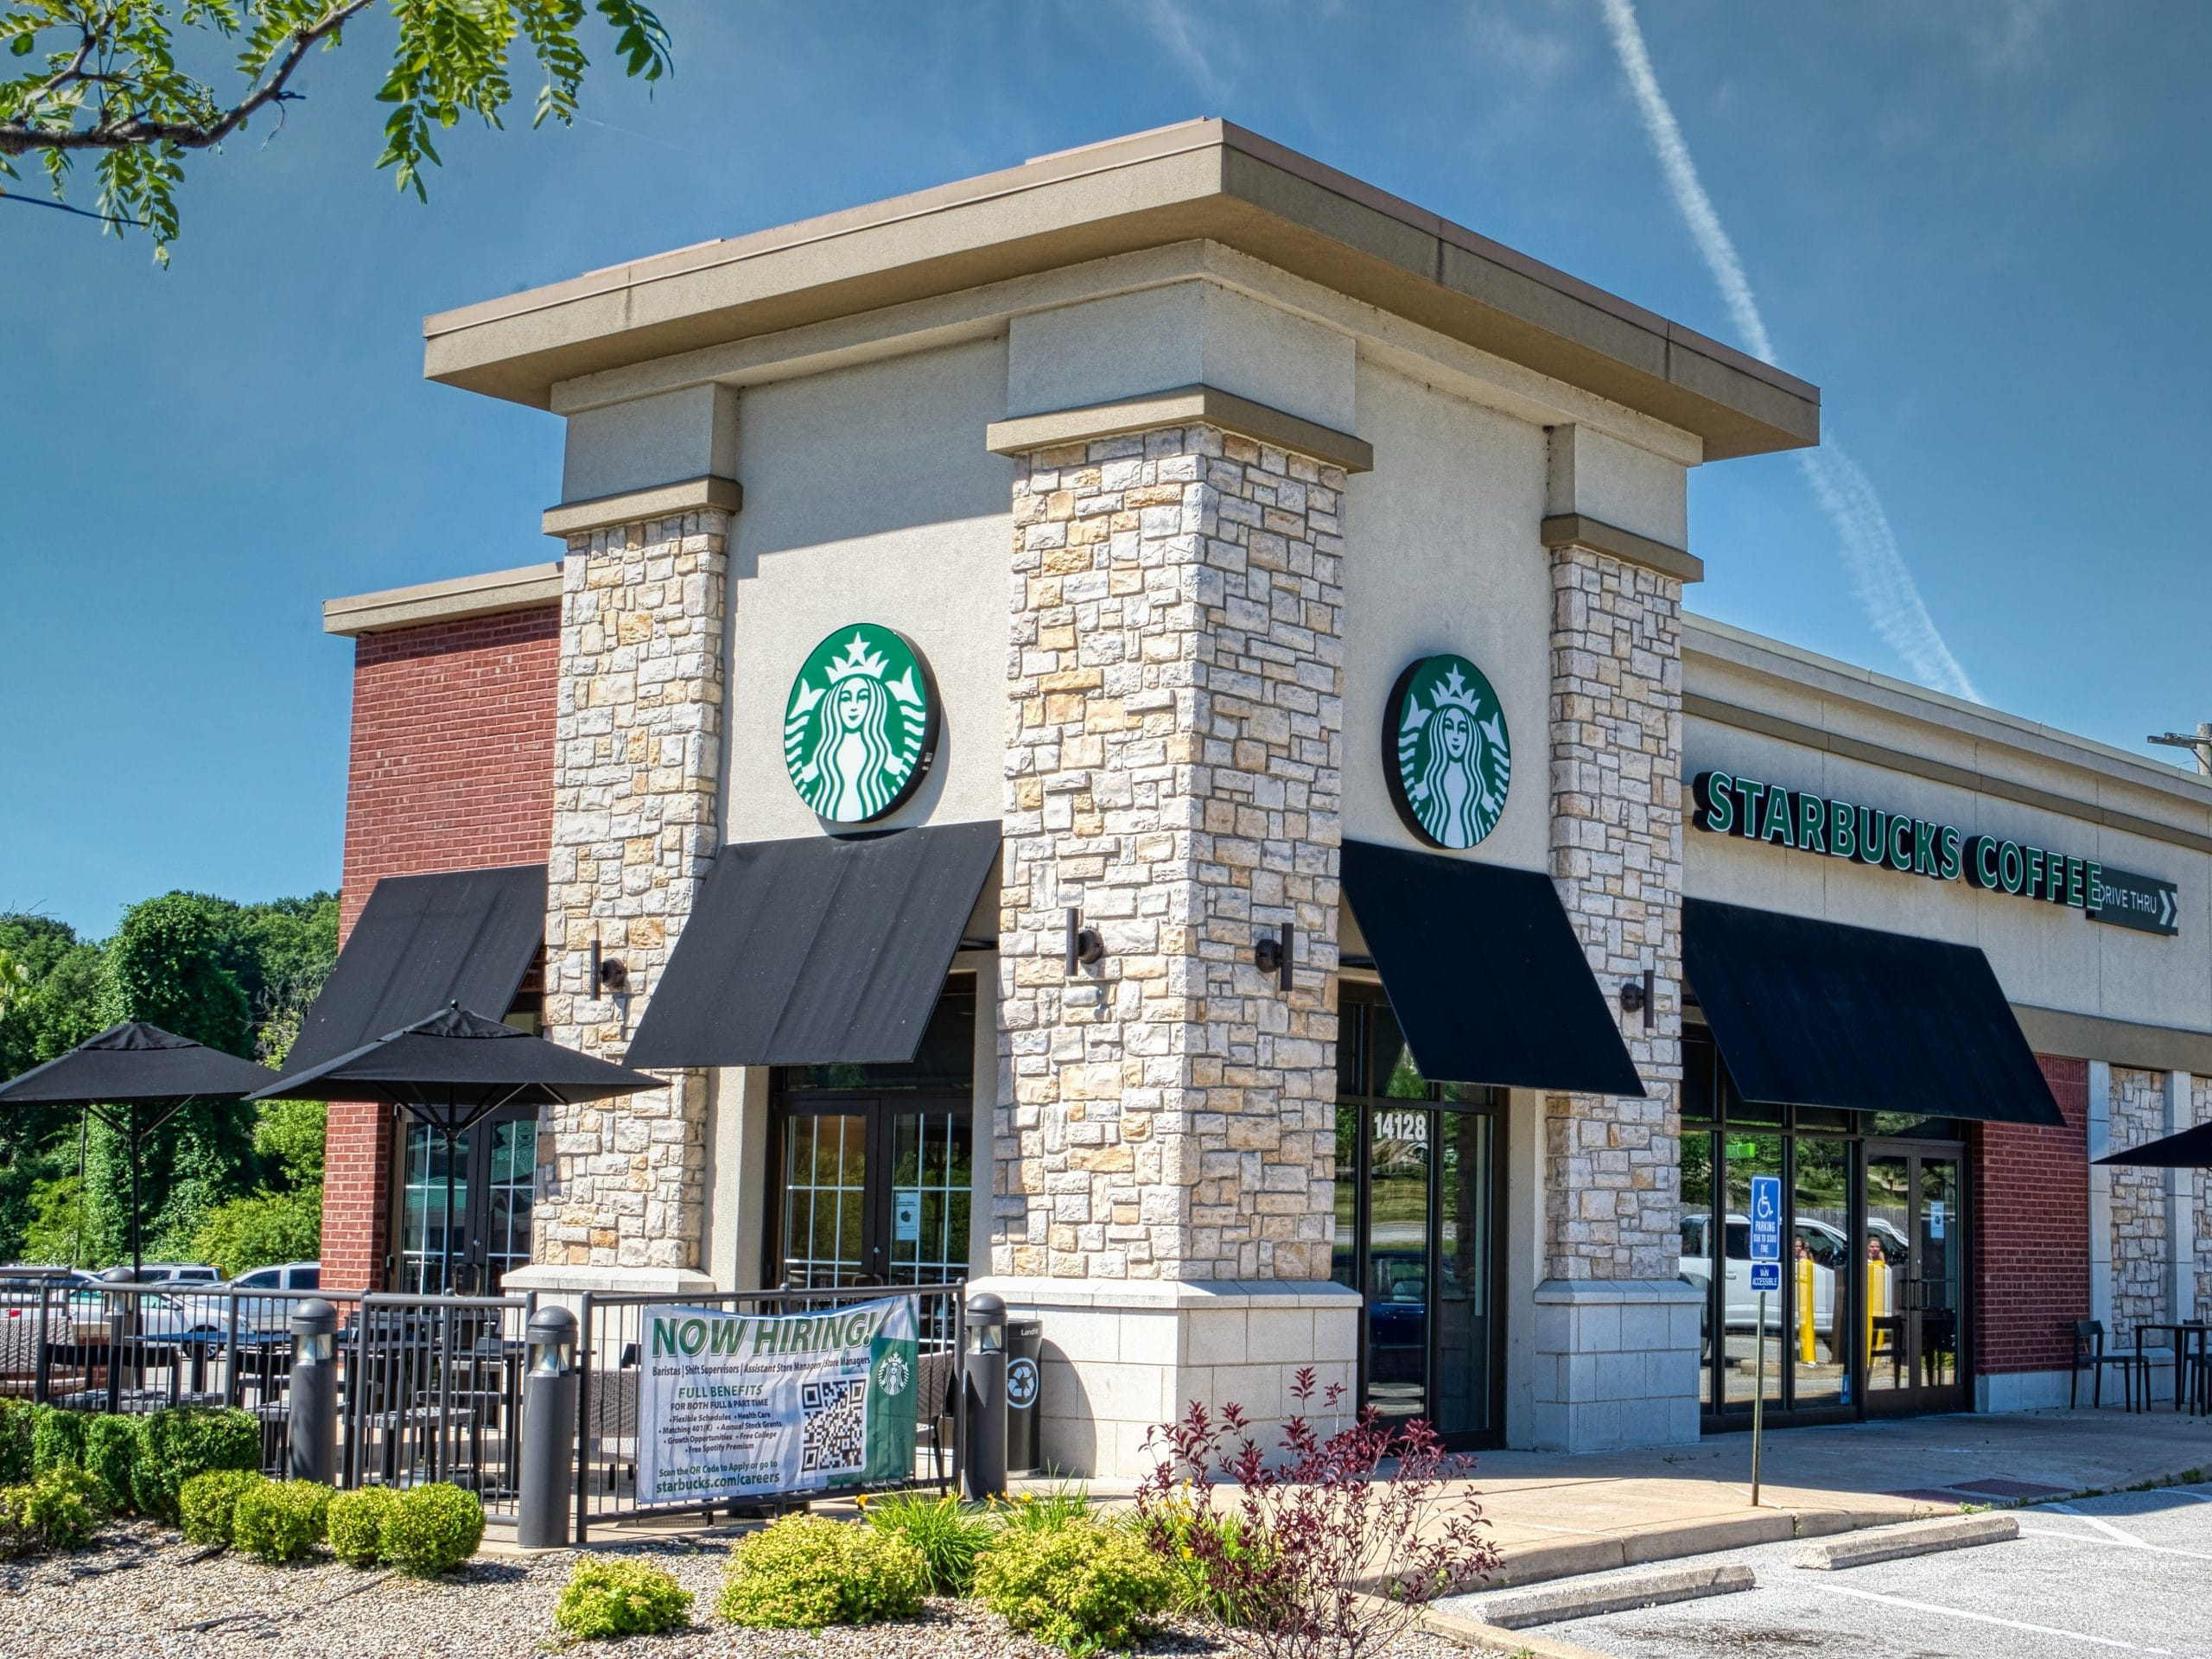 Starbucks cafe, outside view, patio with tables and umbrellas